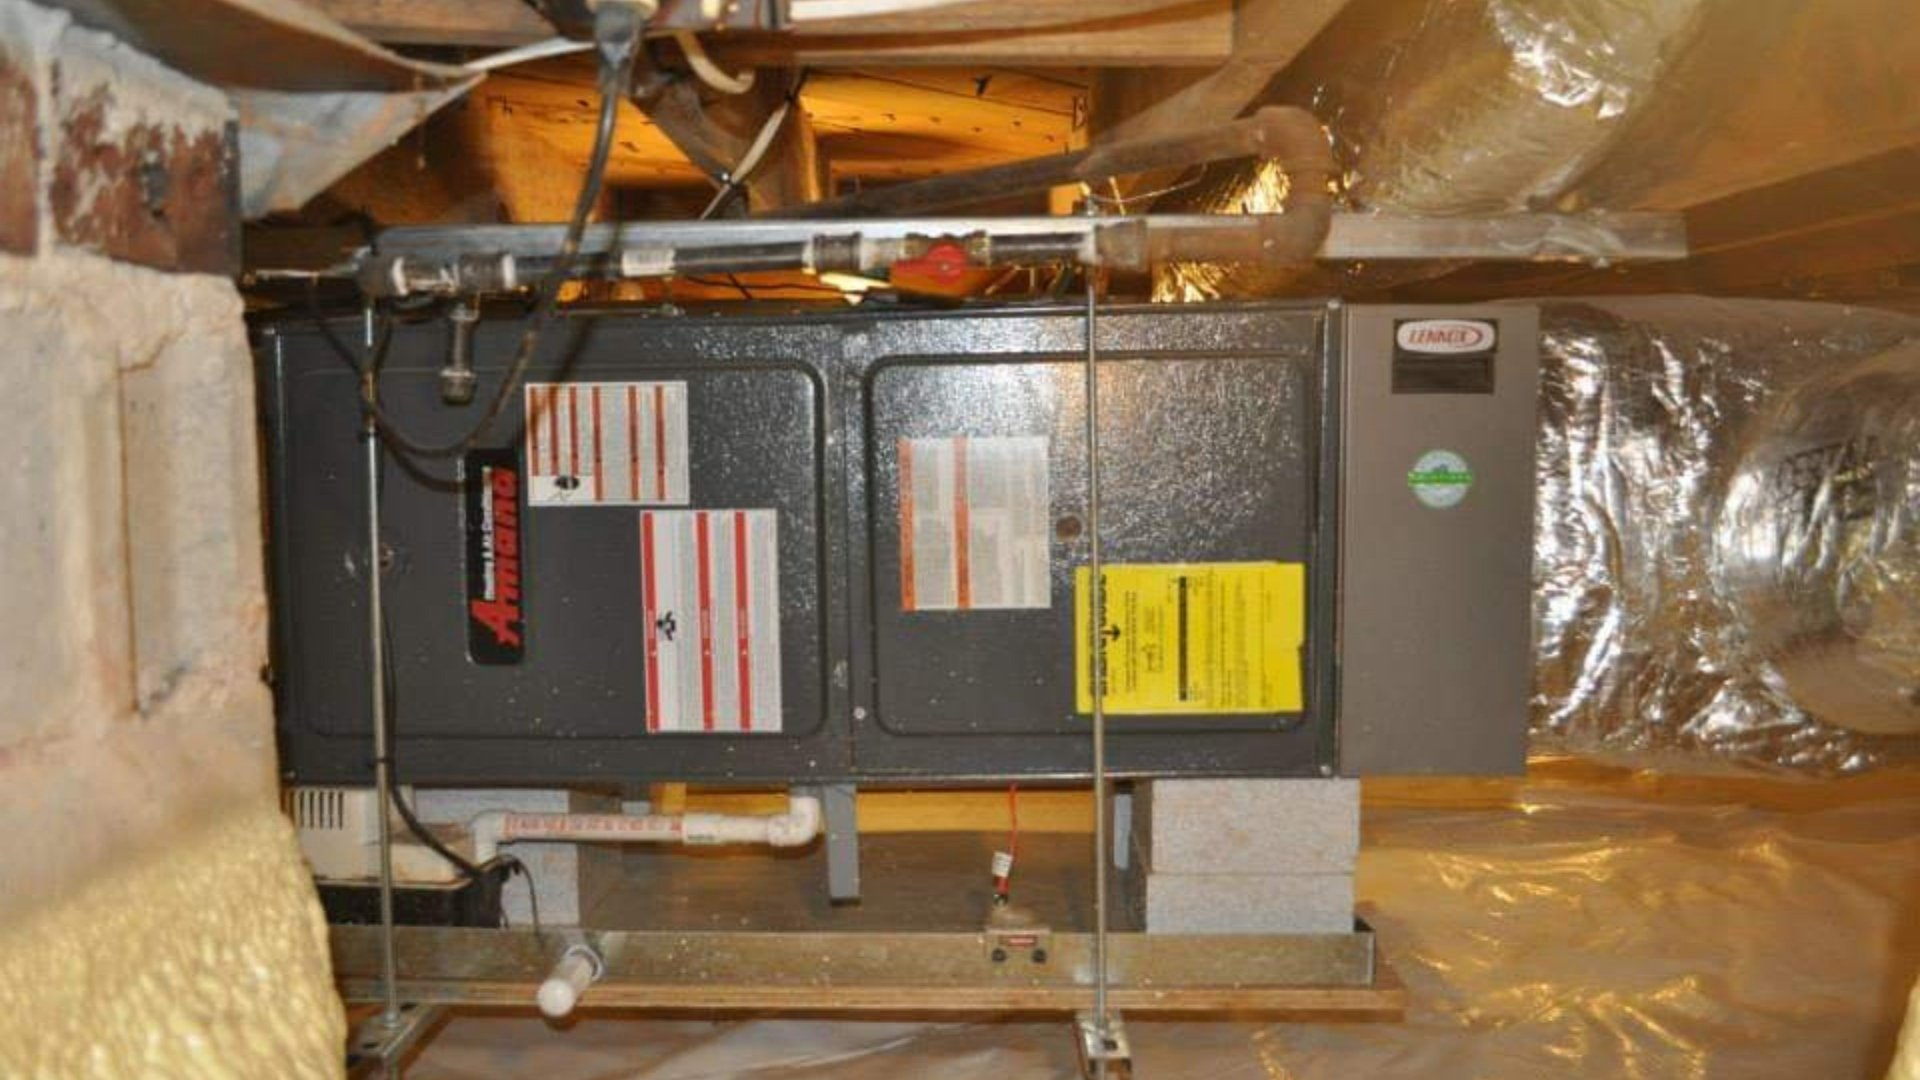 Amana Furnace installed in Crawlspace - Heating Page Gallery